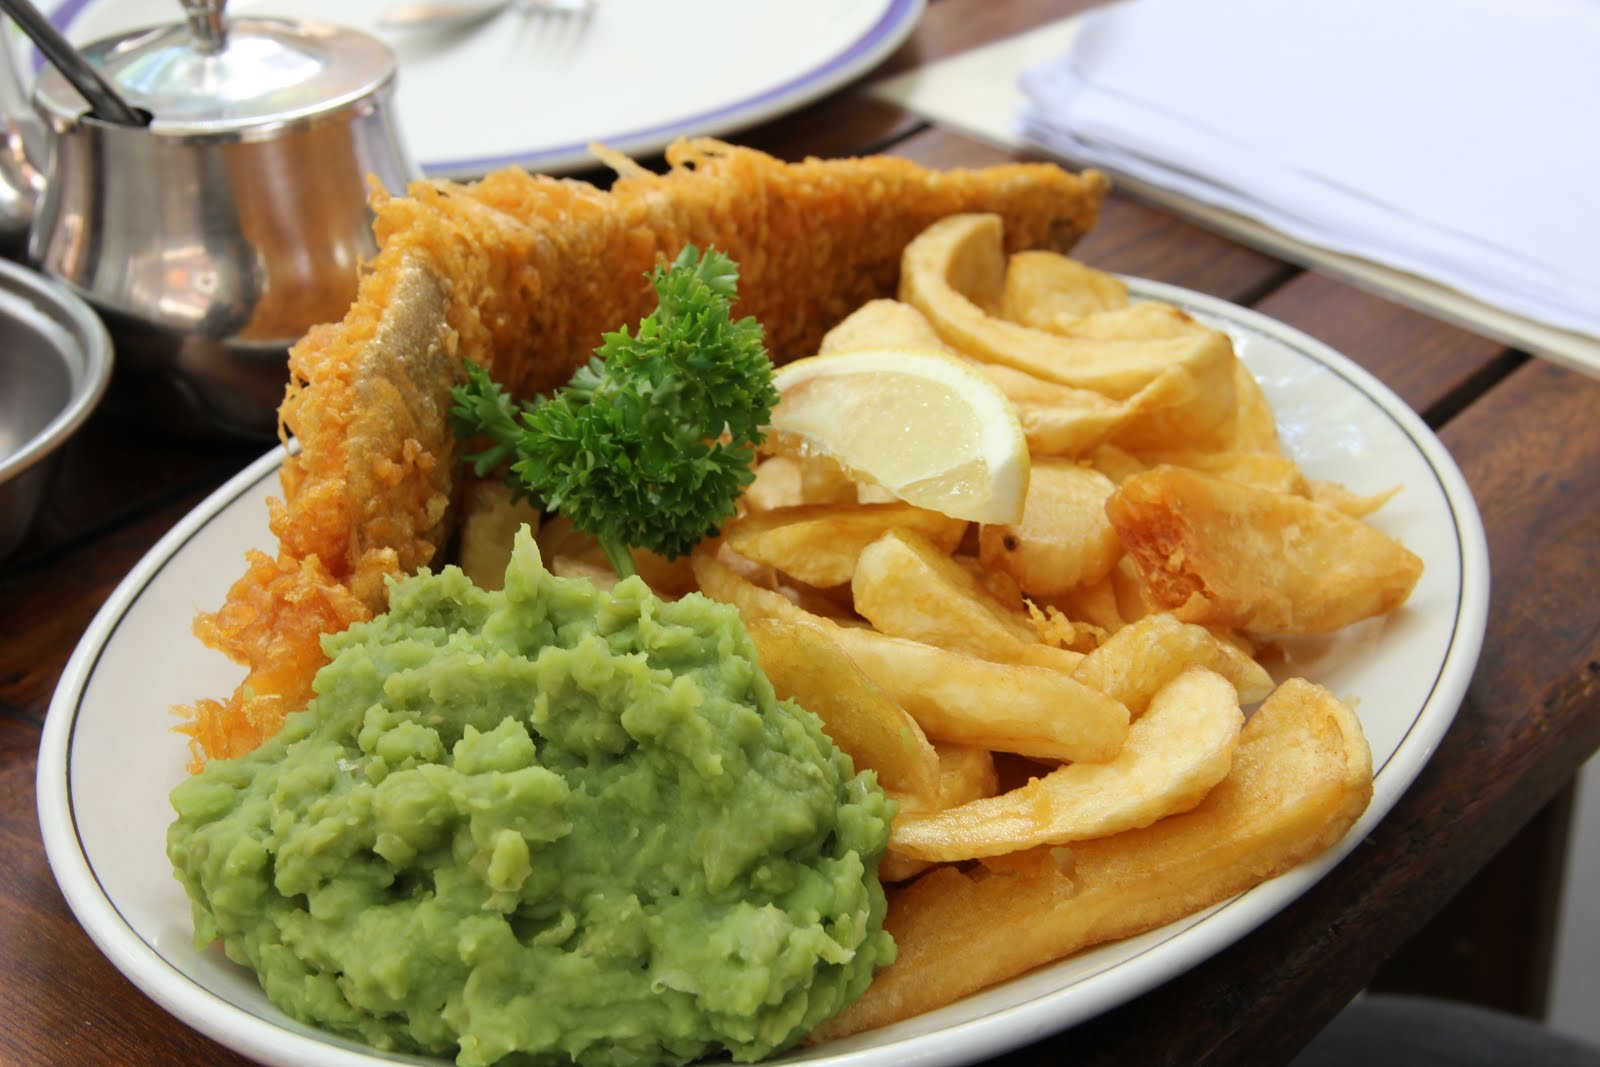 Sabbatical happy valley london fish chips for Fish and chips london